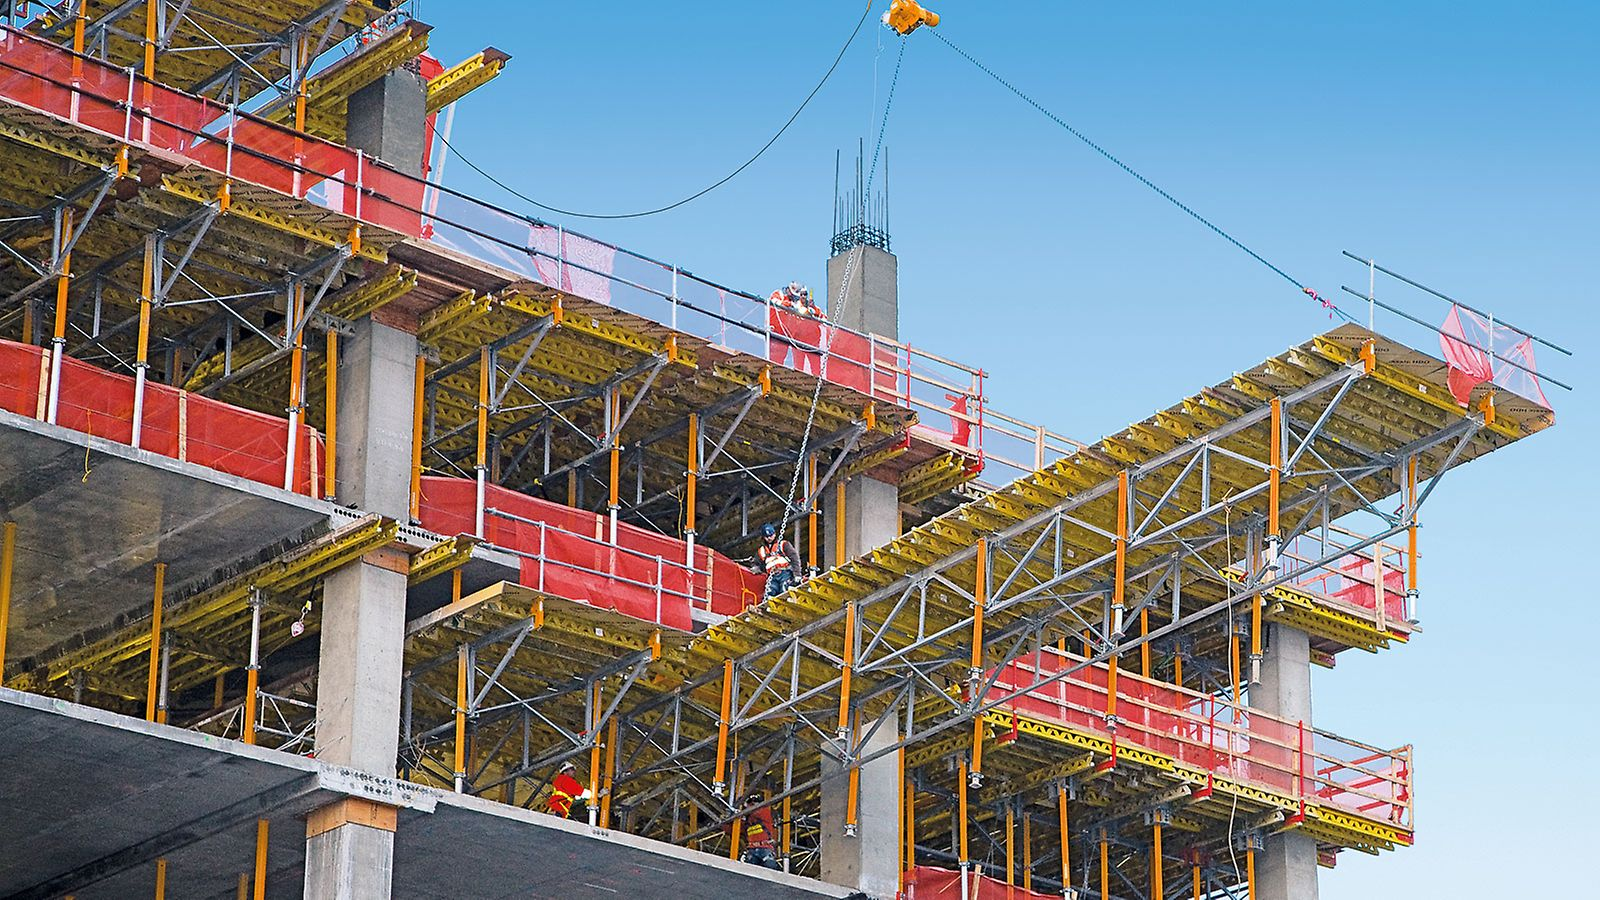 The crane pulls the table horizontally out of the building with the help of the lifting mechanism and the single roller. Workers are not required to stand on the table at any time.